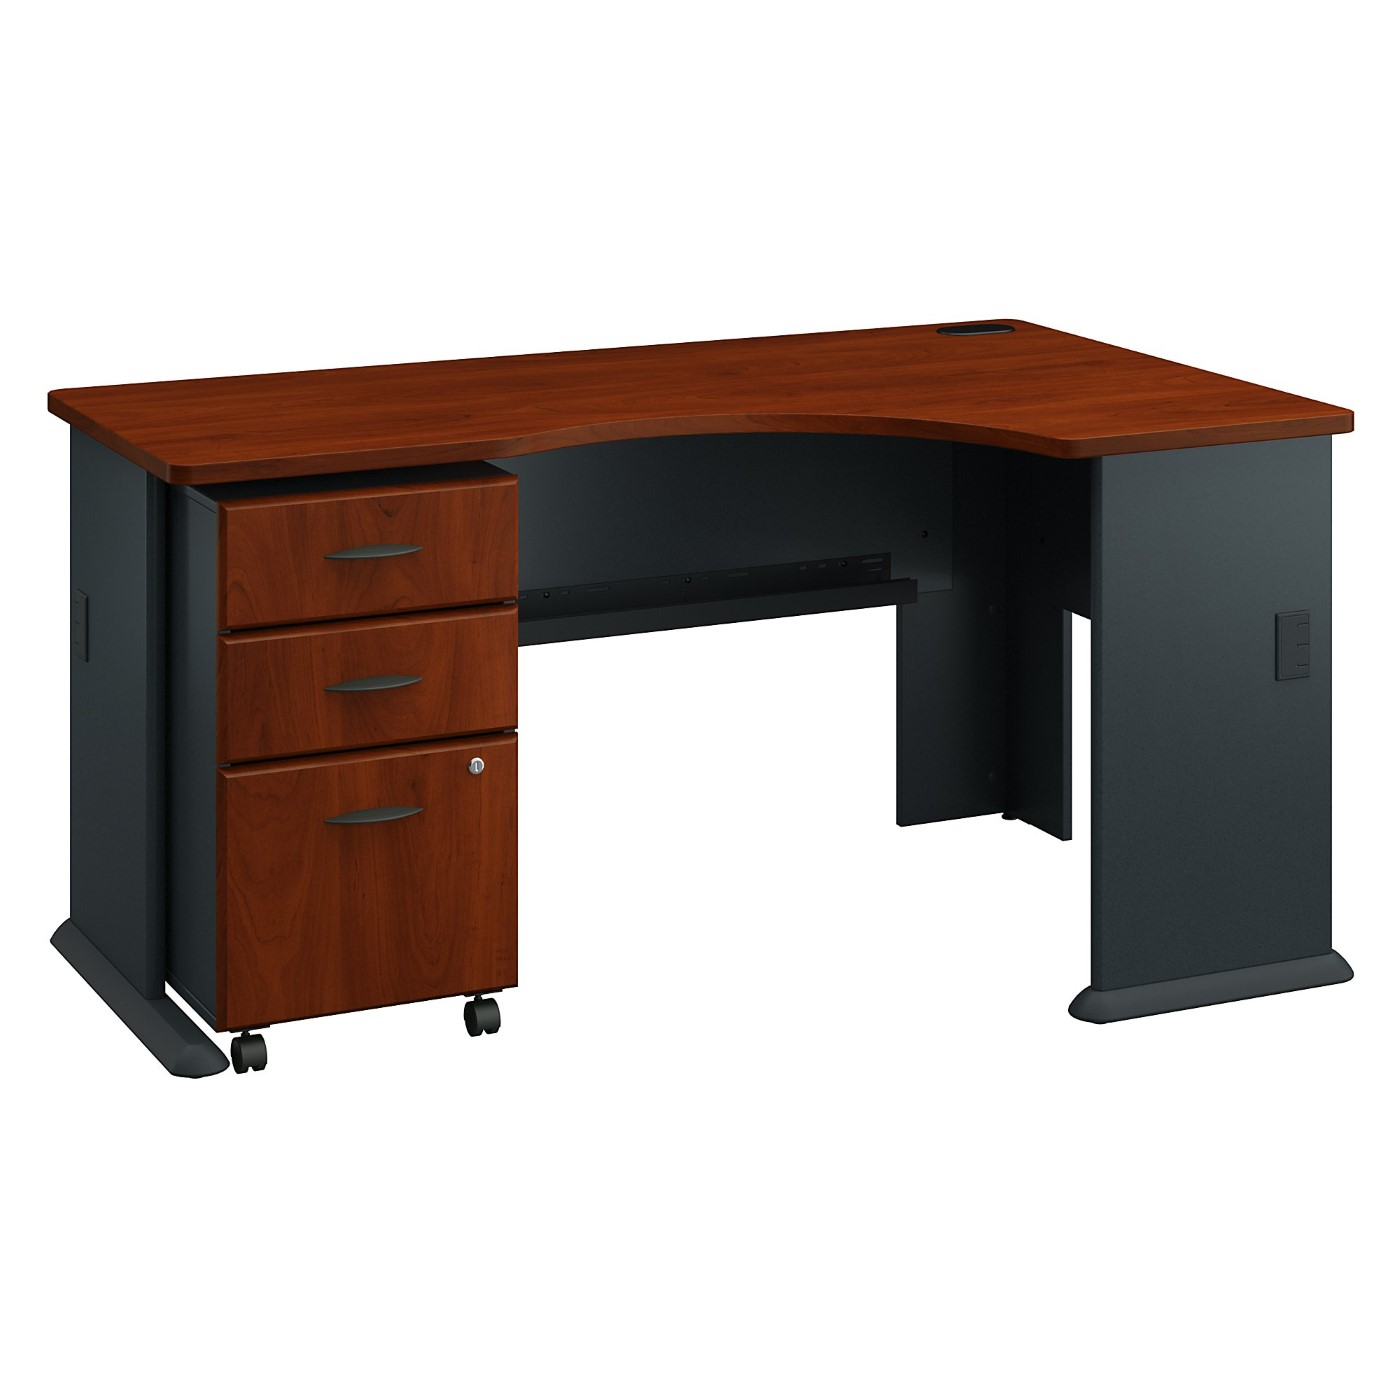 BUSH BUSINESS FURNITURE SERIES A RIGHT CORNER DESK WITH MOBILE FILE CABINET. FREE SHIPPING